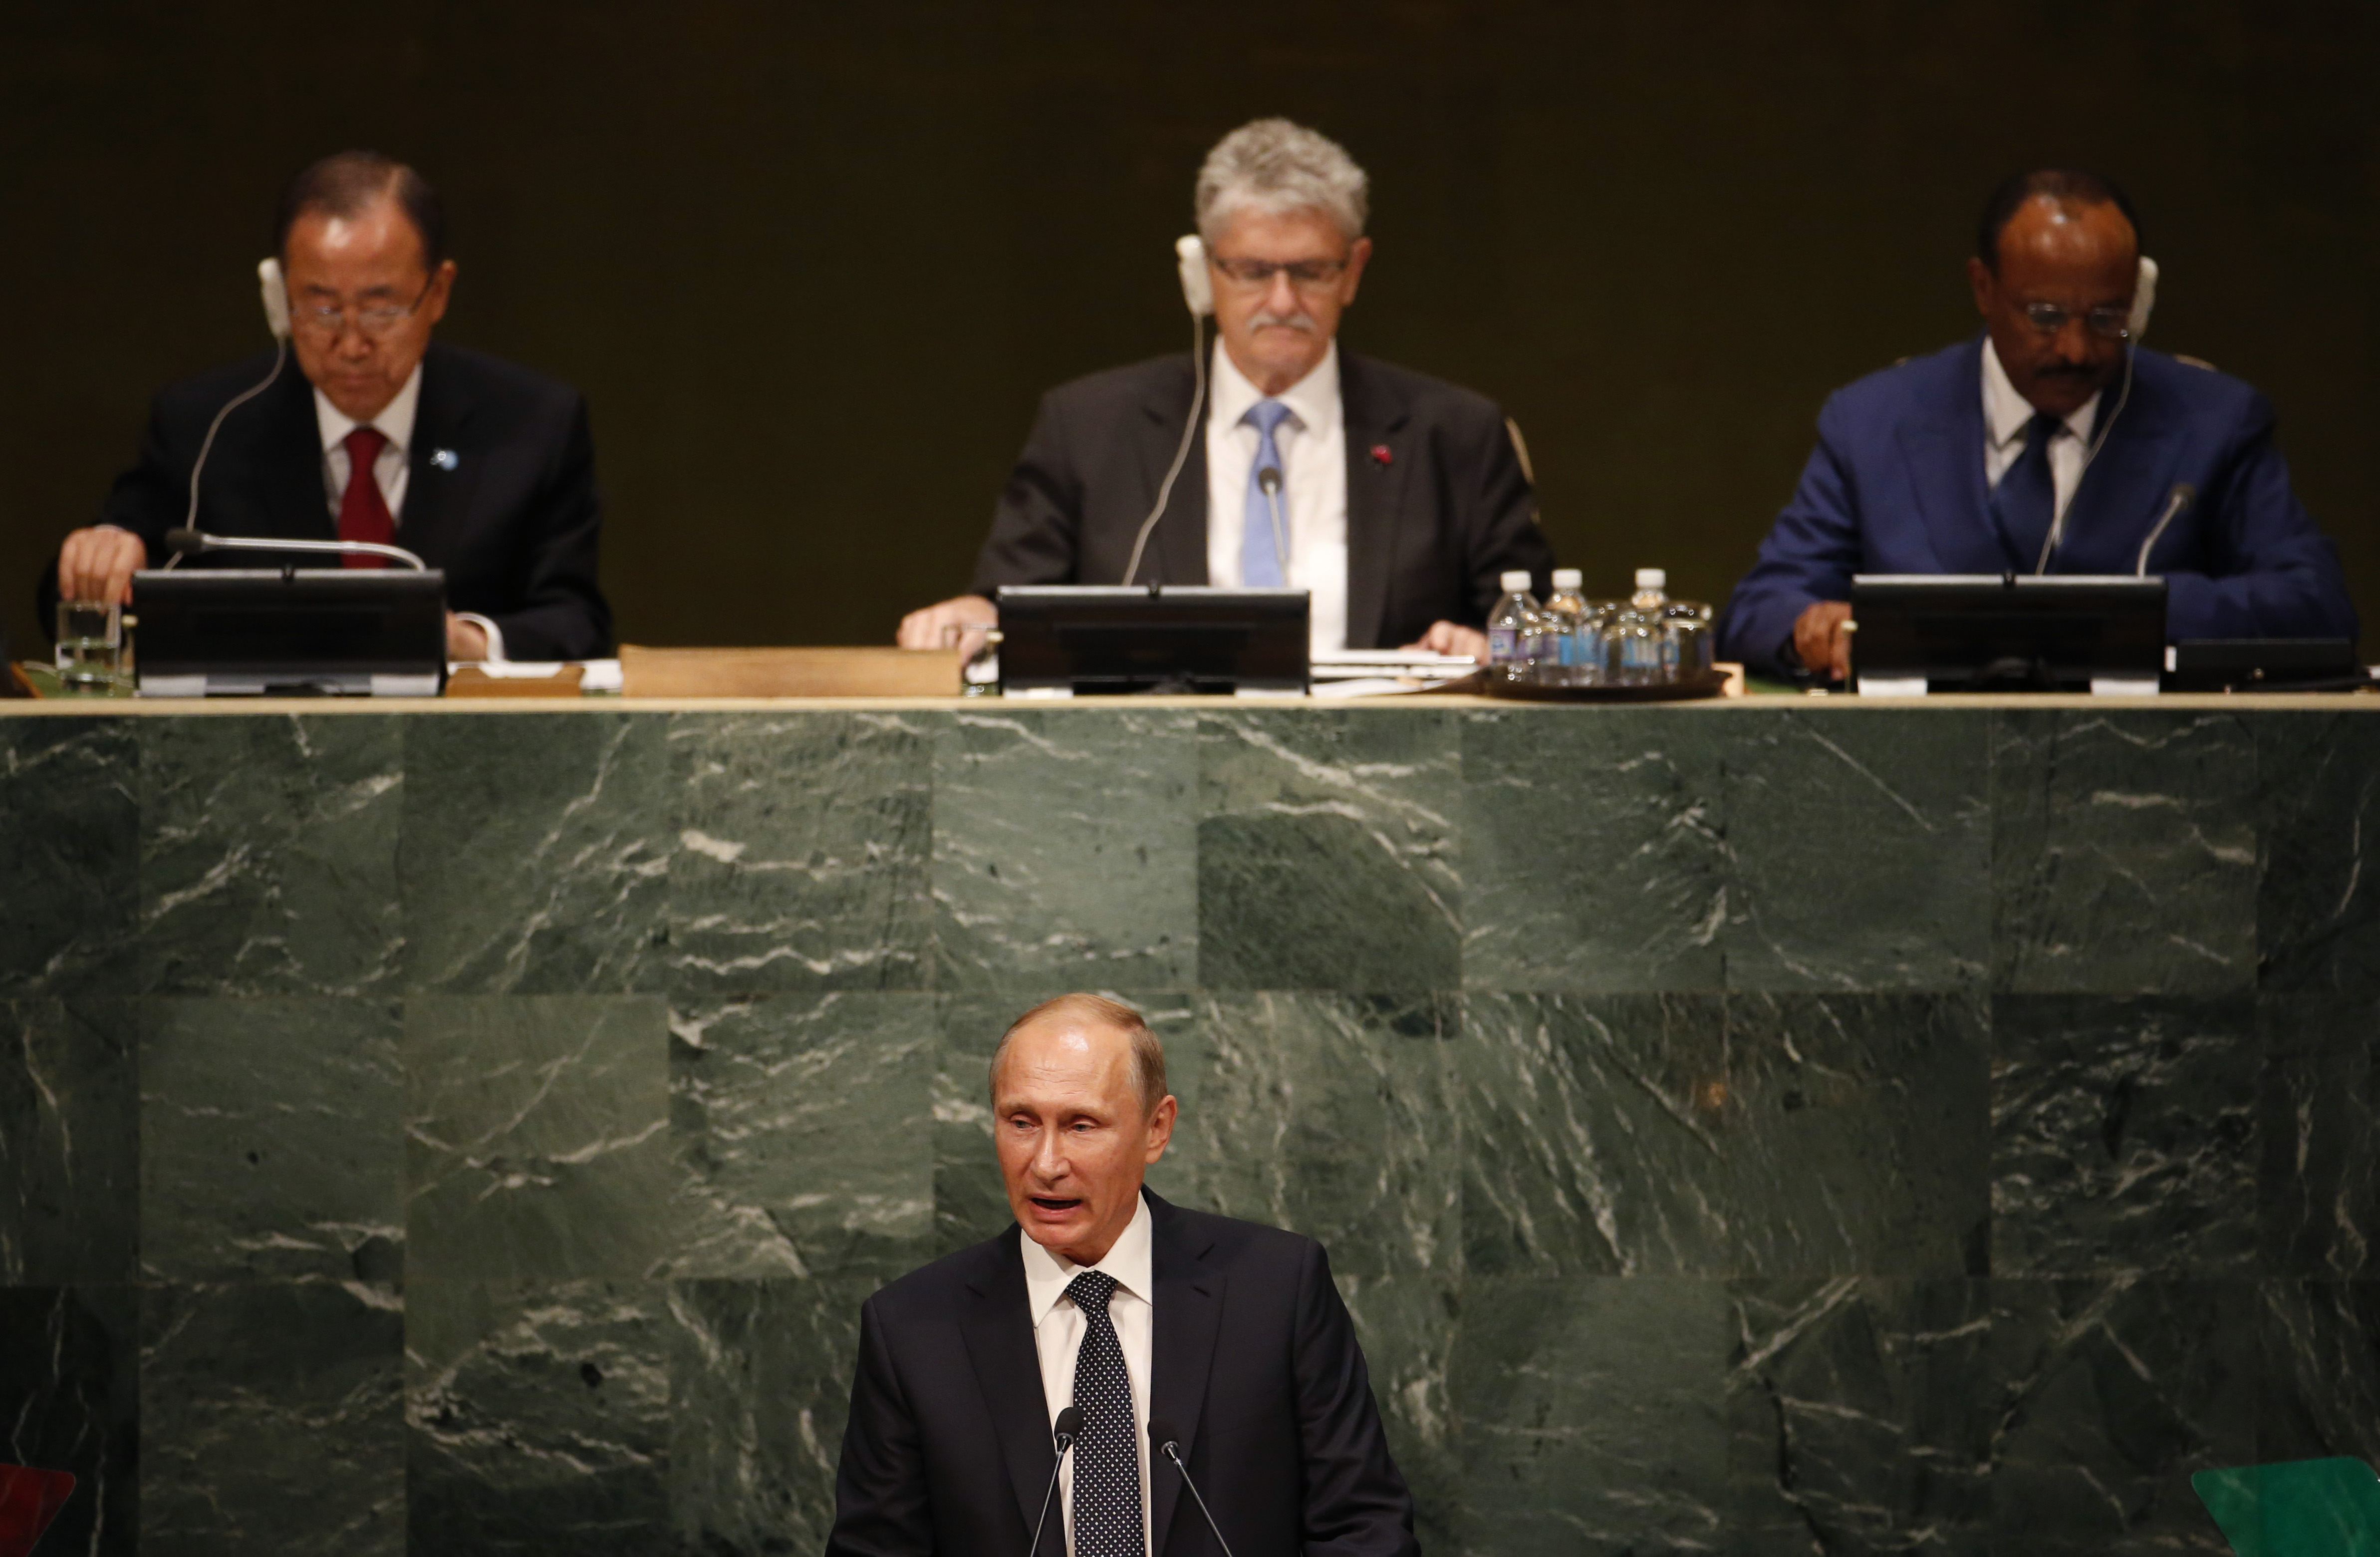 Russian President Vladimir Putin addresses the 70th session of the UN General Assembly on Monday